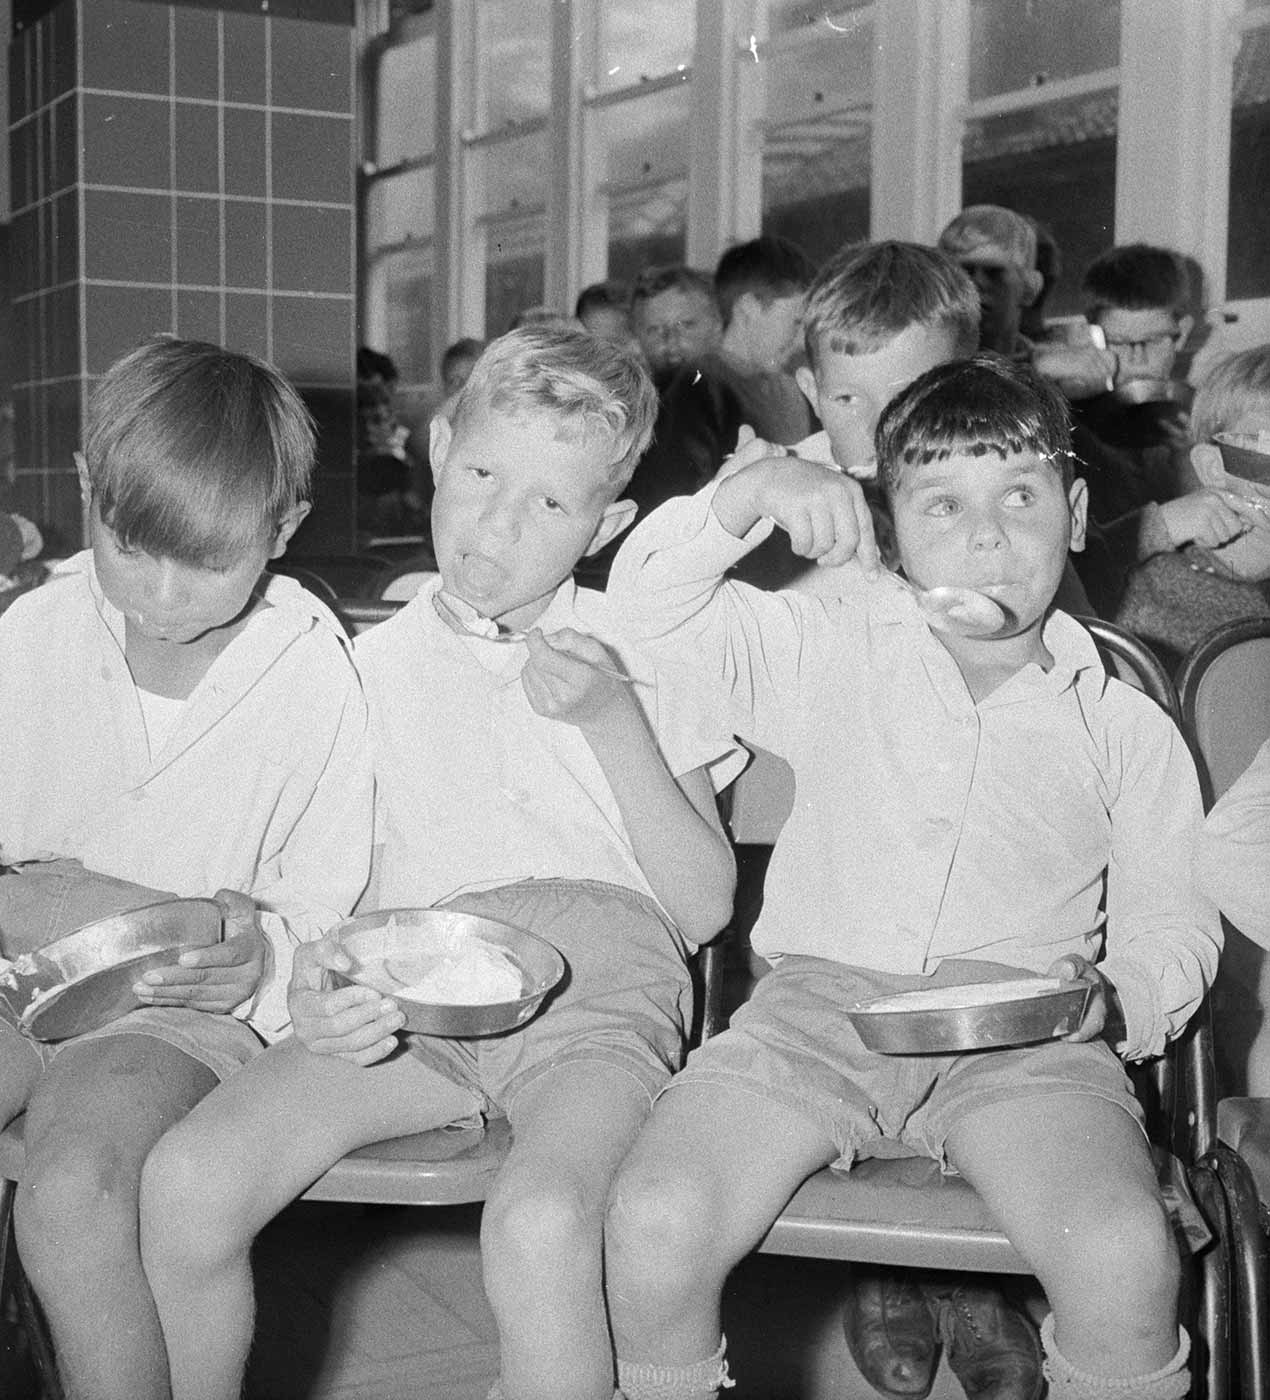 Black and white photo showing a group of boys, sitting eating from small metal bowls. - click to view larger image